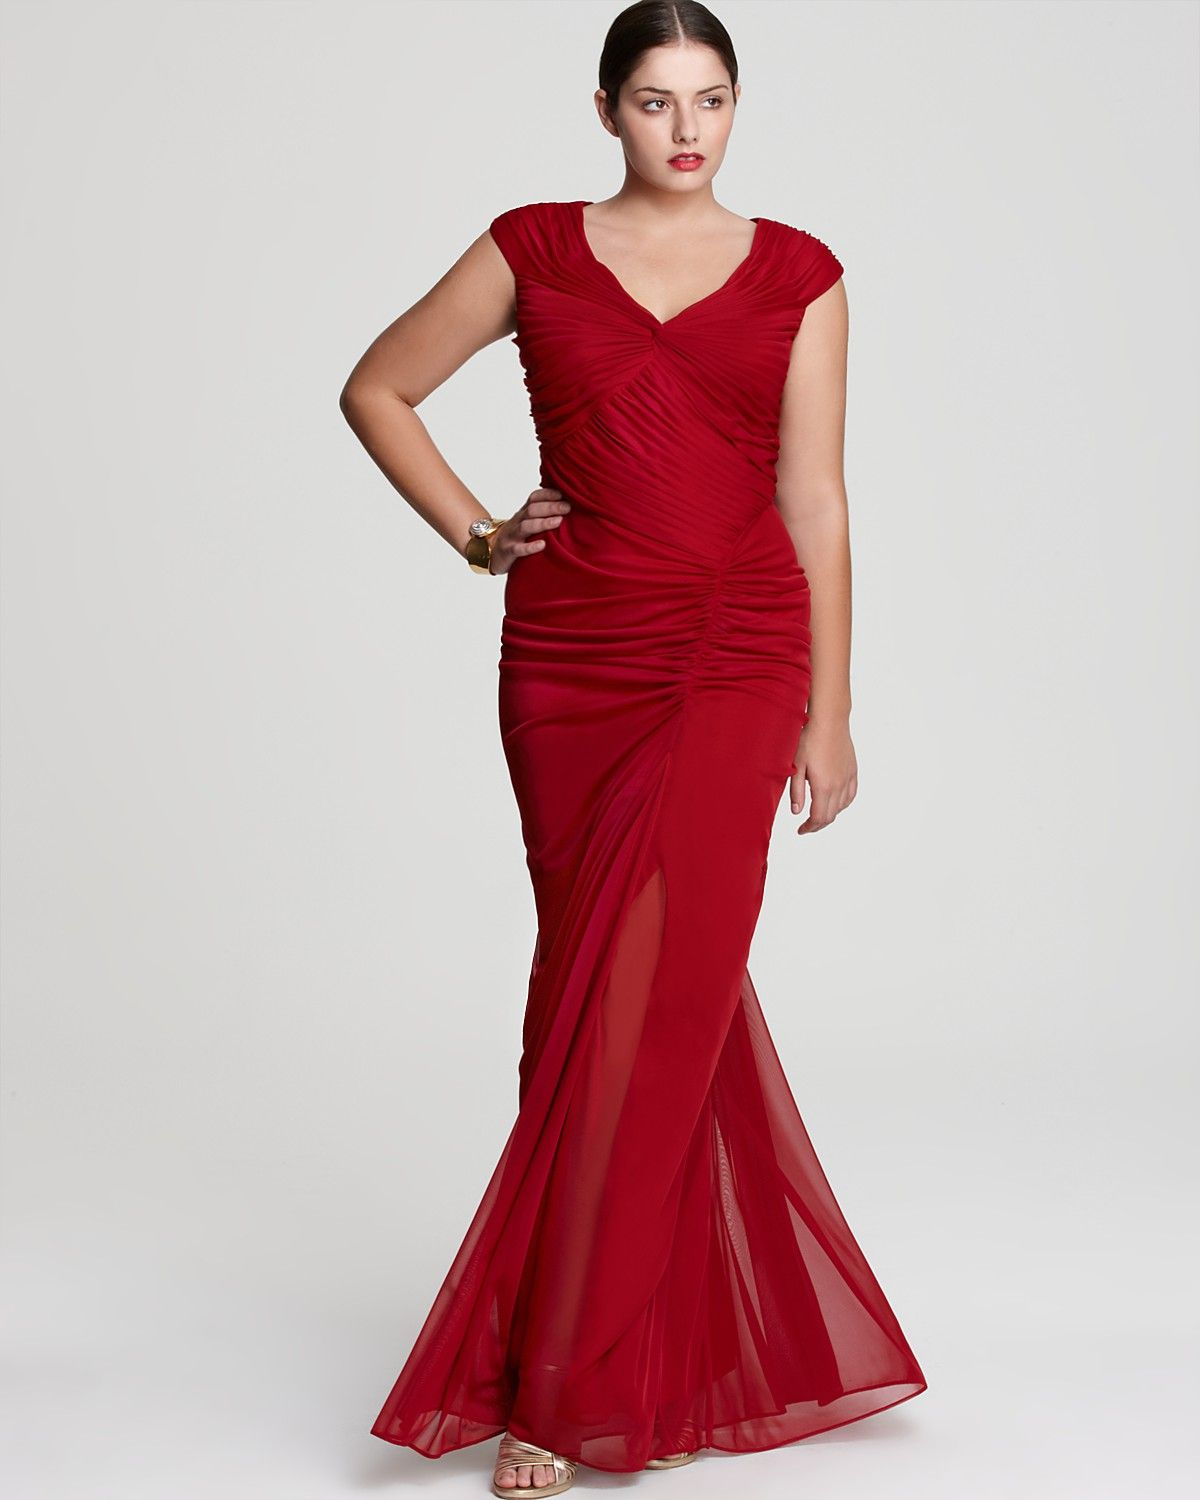 67423ff55346 Adrianna Papell Plus Gown - Long Ruched Cap Sleeve